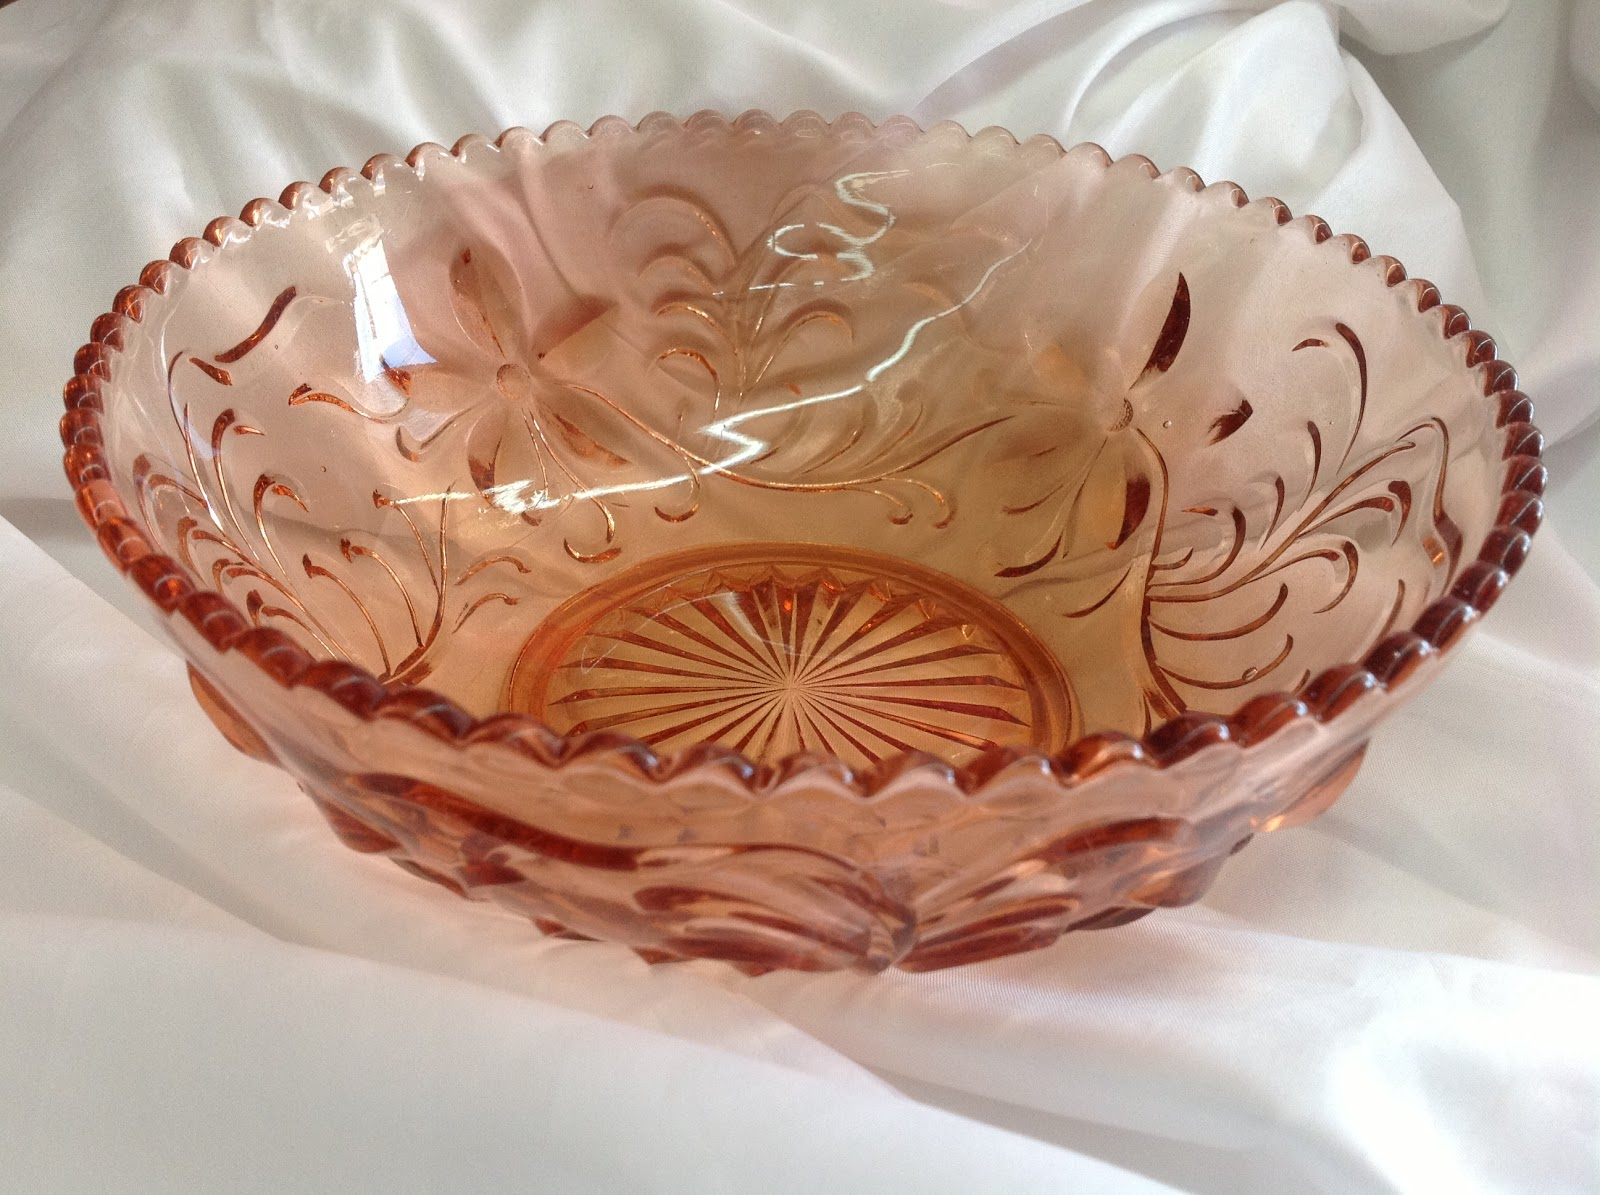 pink glass bowl with filagree engraved pattern